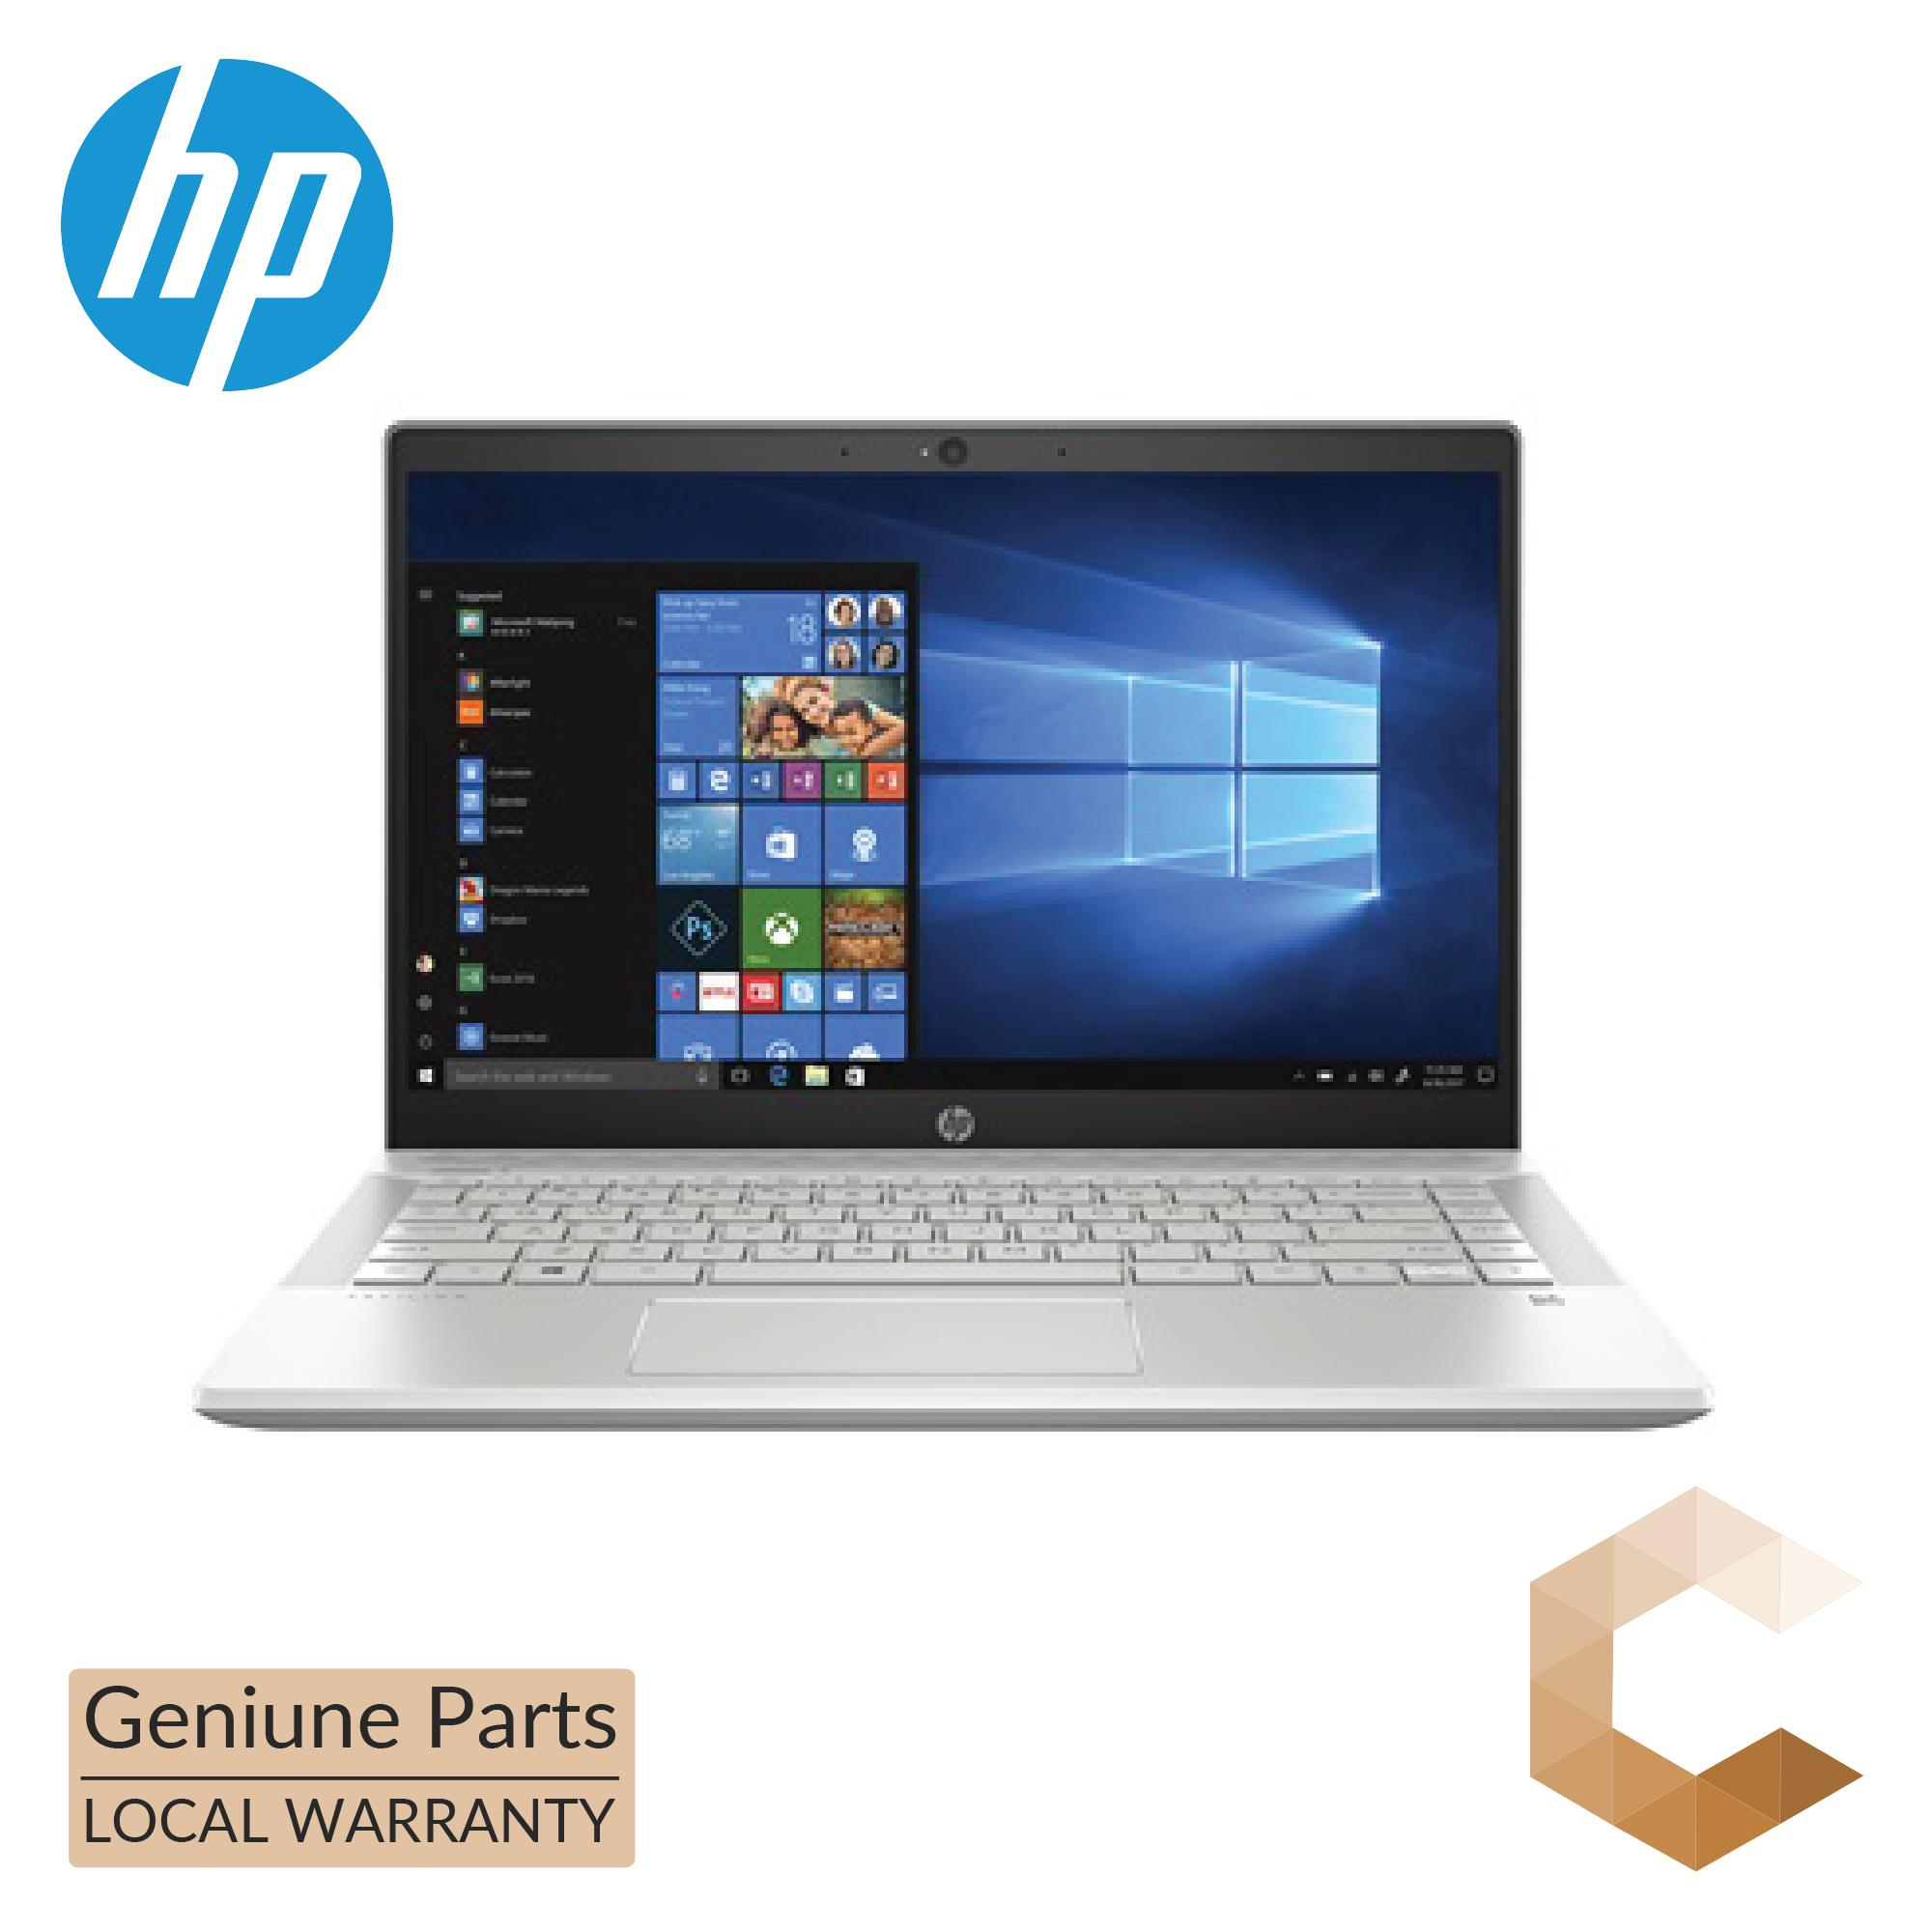 HP Pavilion Laptop 14-ce0065TX (4PC33PA)